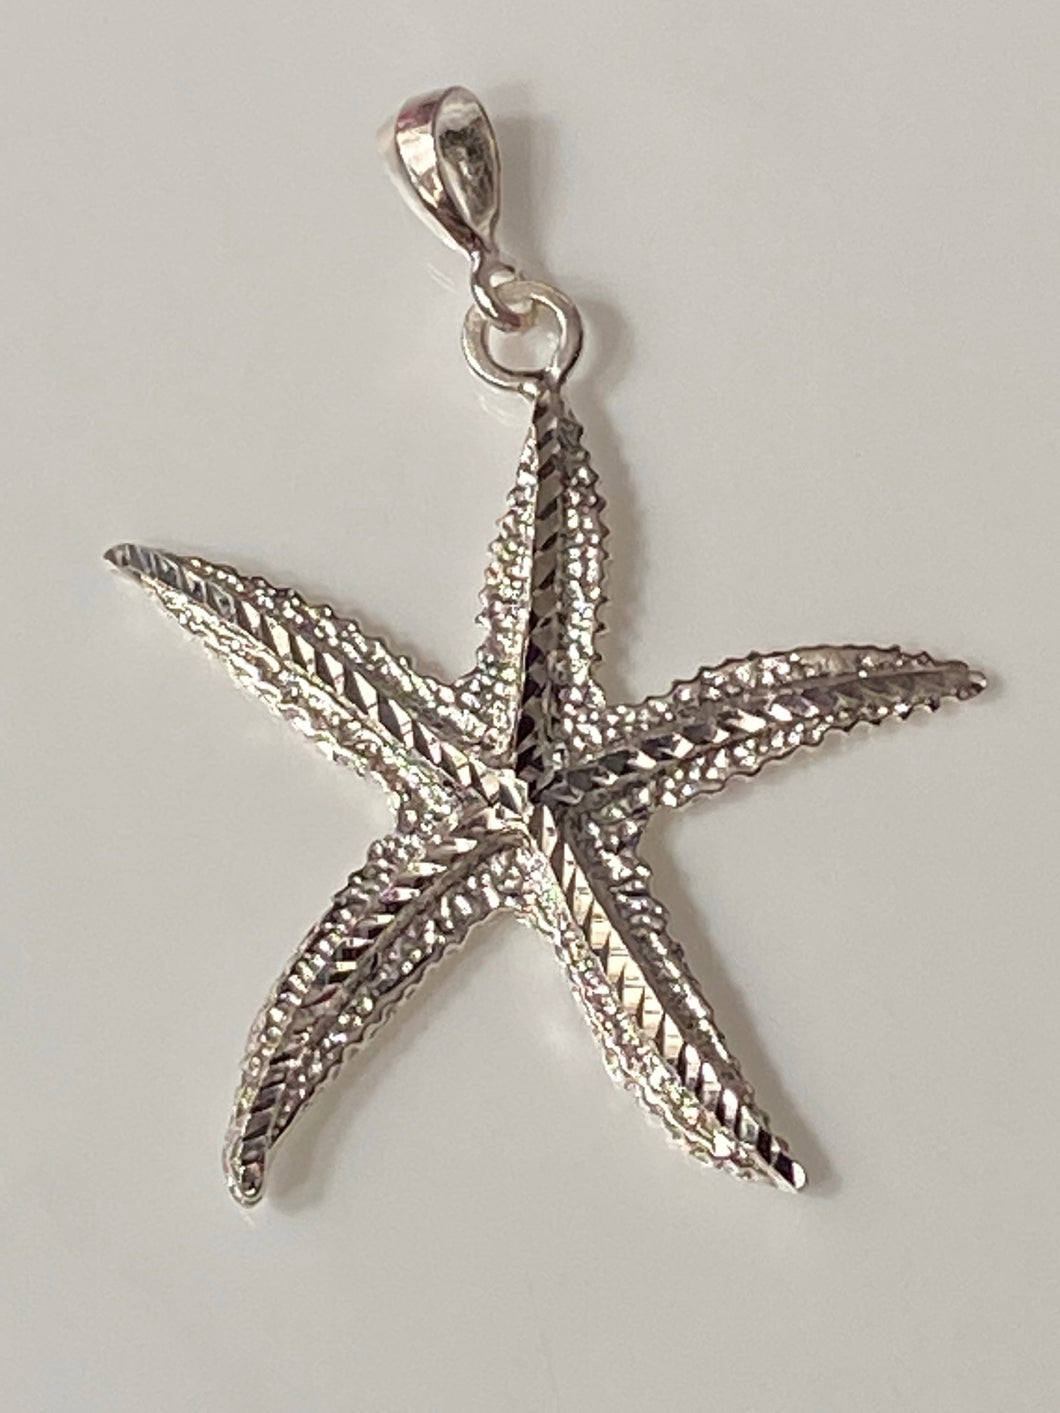 Starfish Pendant 100% Sterling Silver Jewelry. Free Shipping! Free Silver Plated Chain